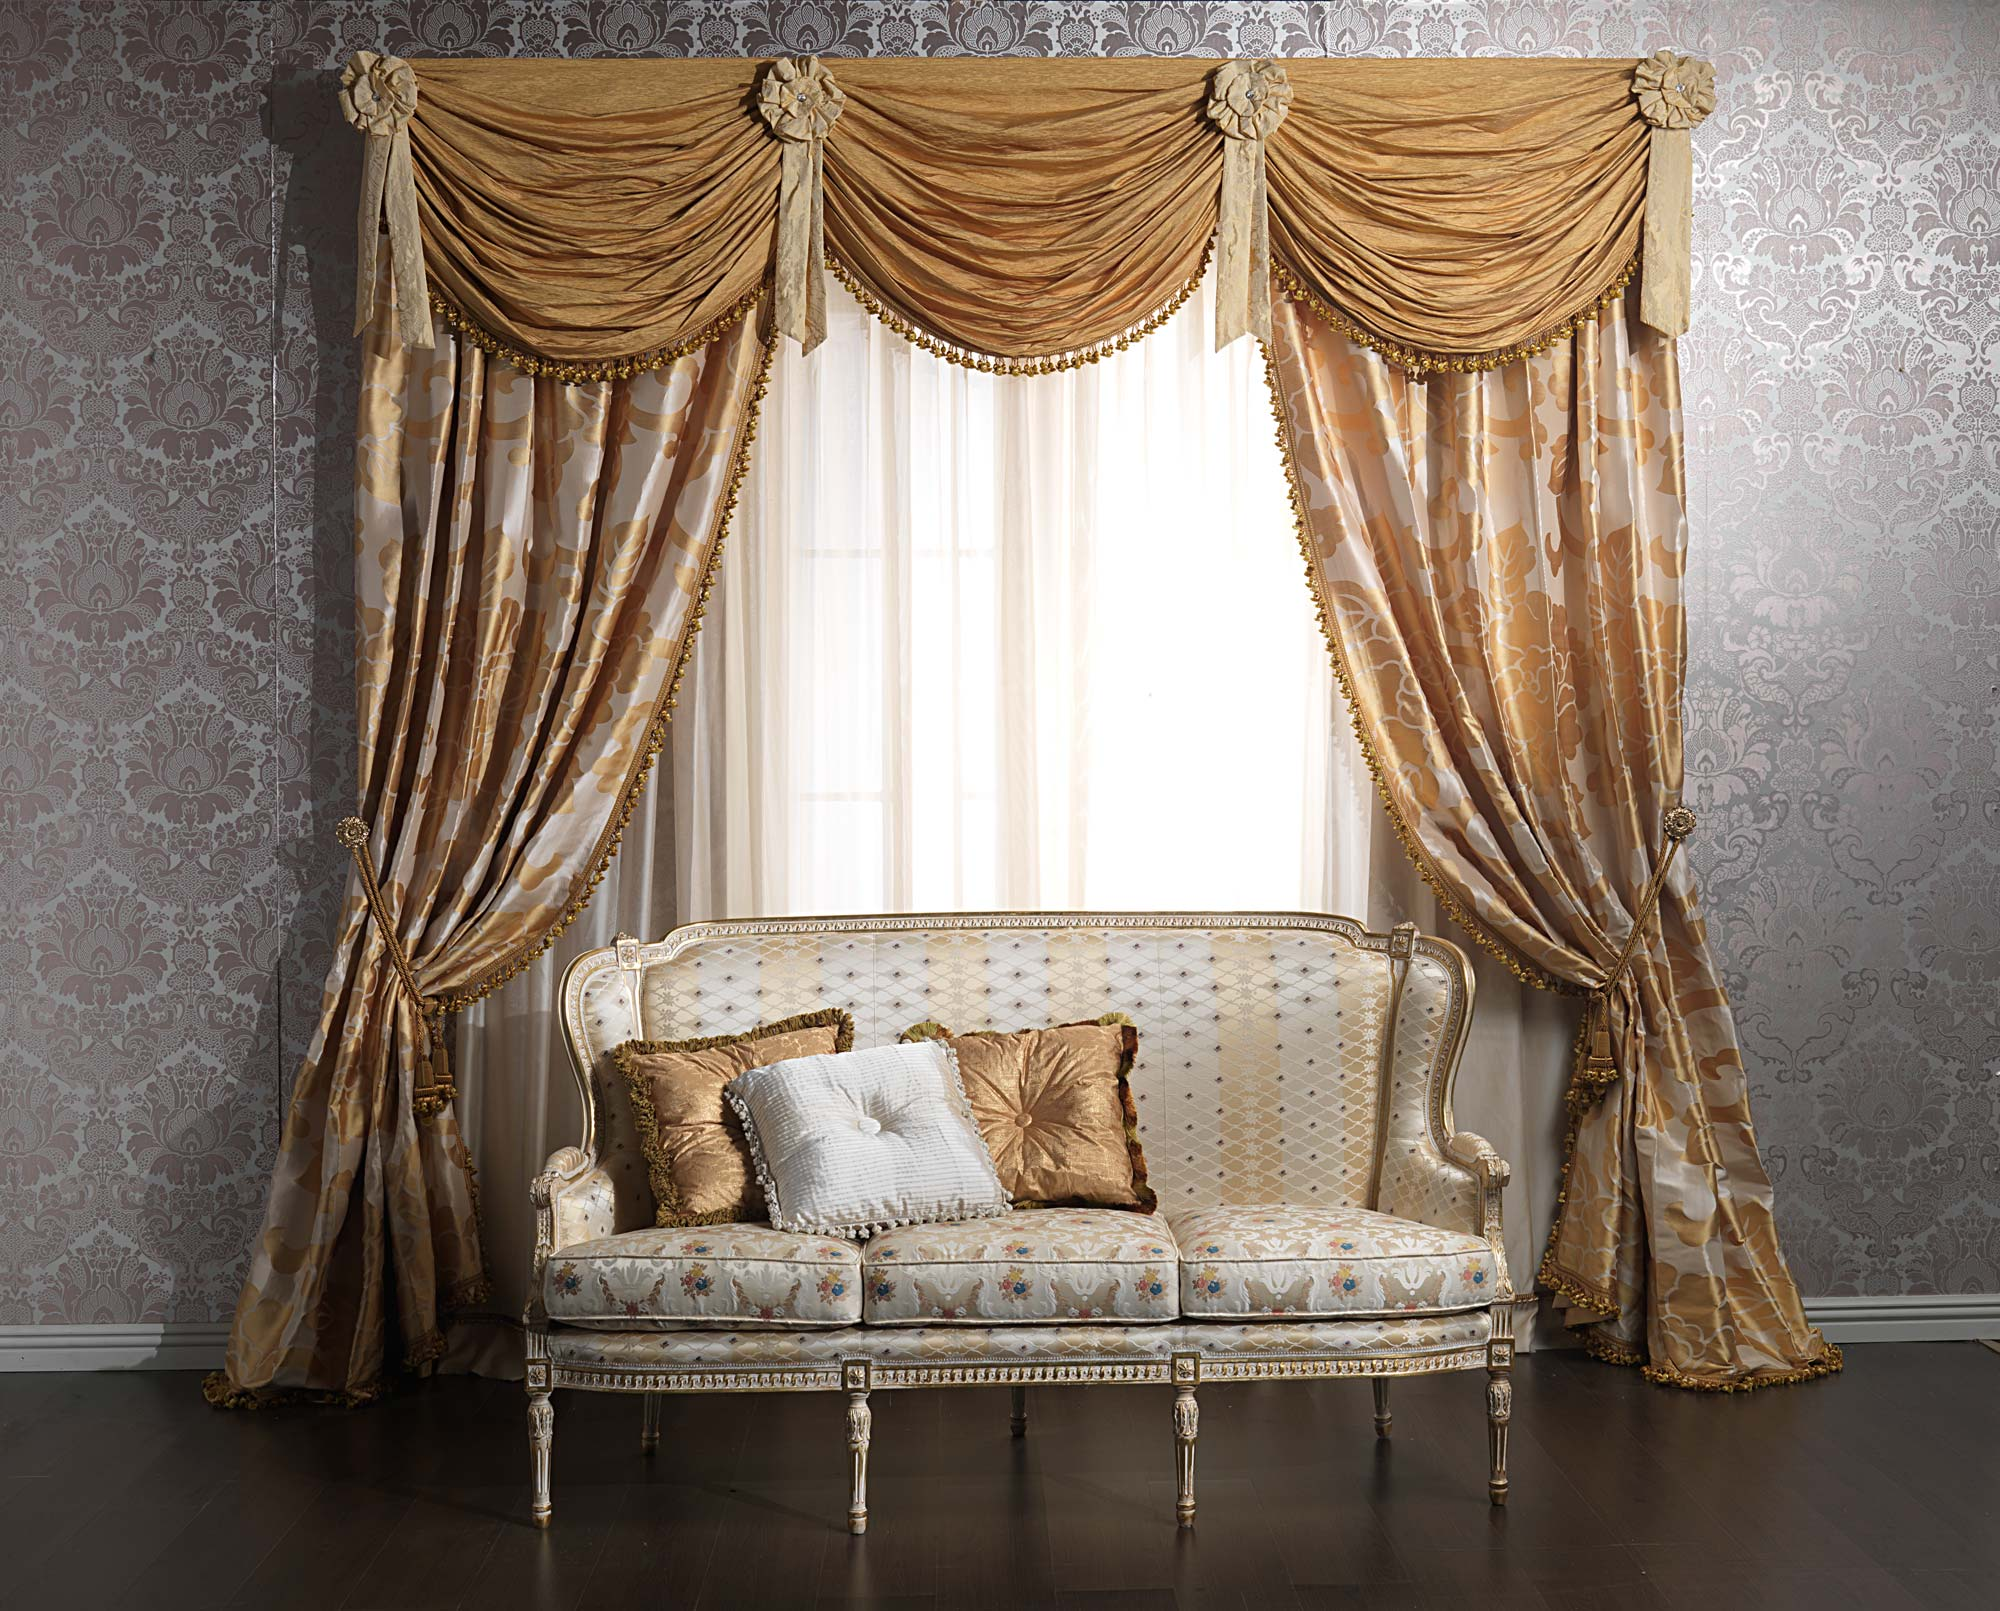 Luxurious curtains: the brightness of gold